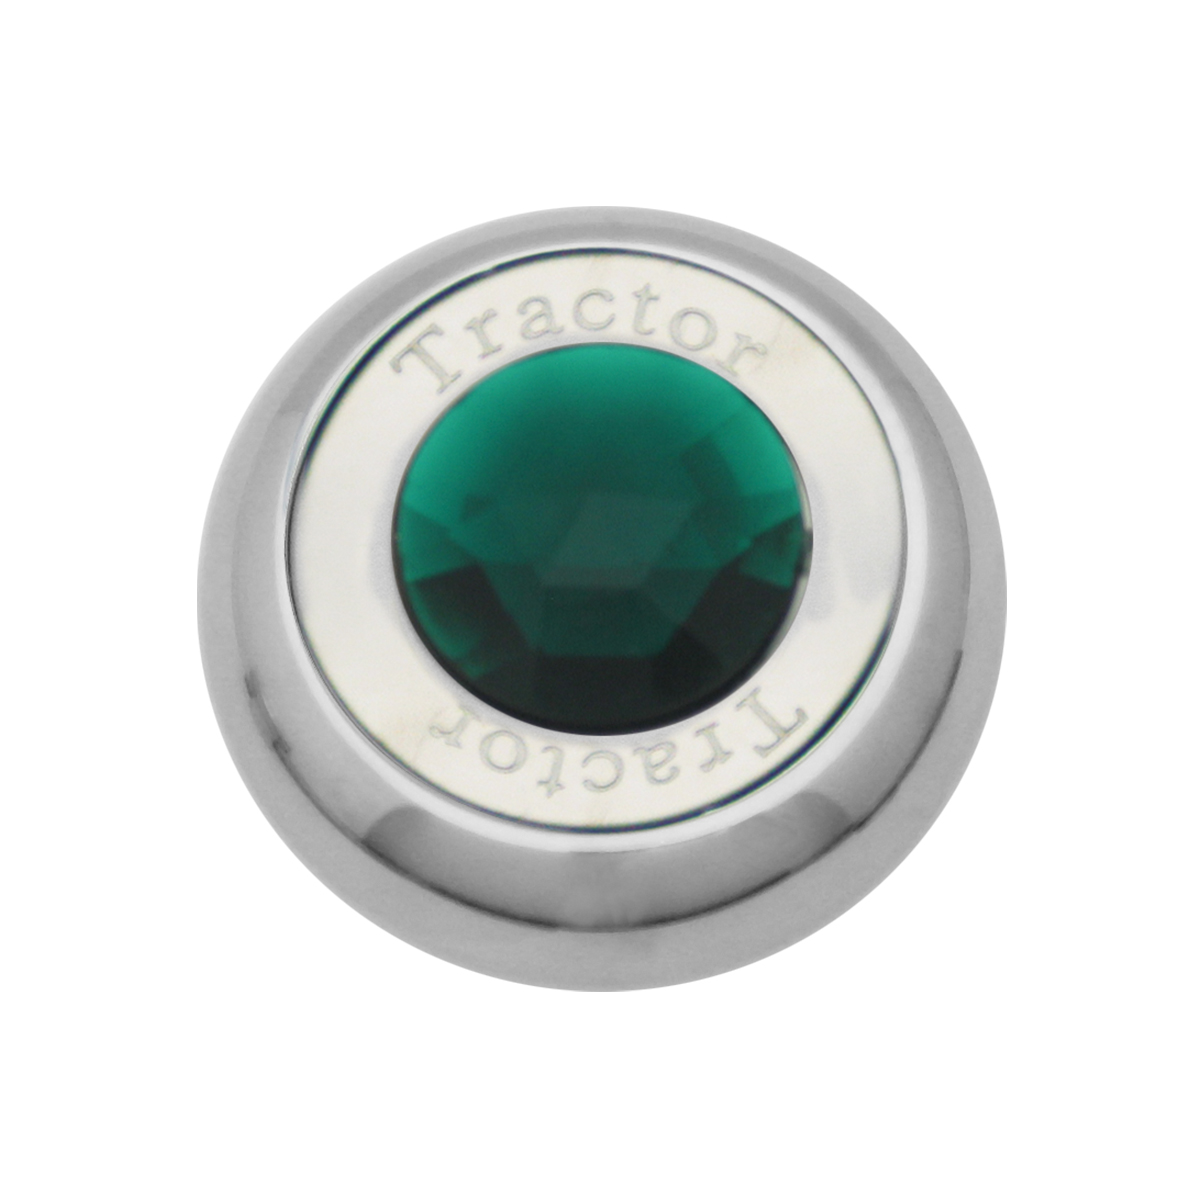 95373 Chrome Screw-In Air Valve Control Knob w/ Crystal